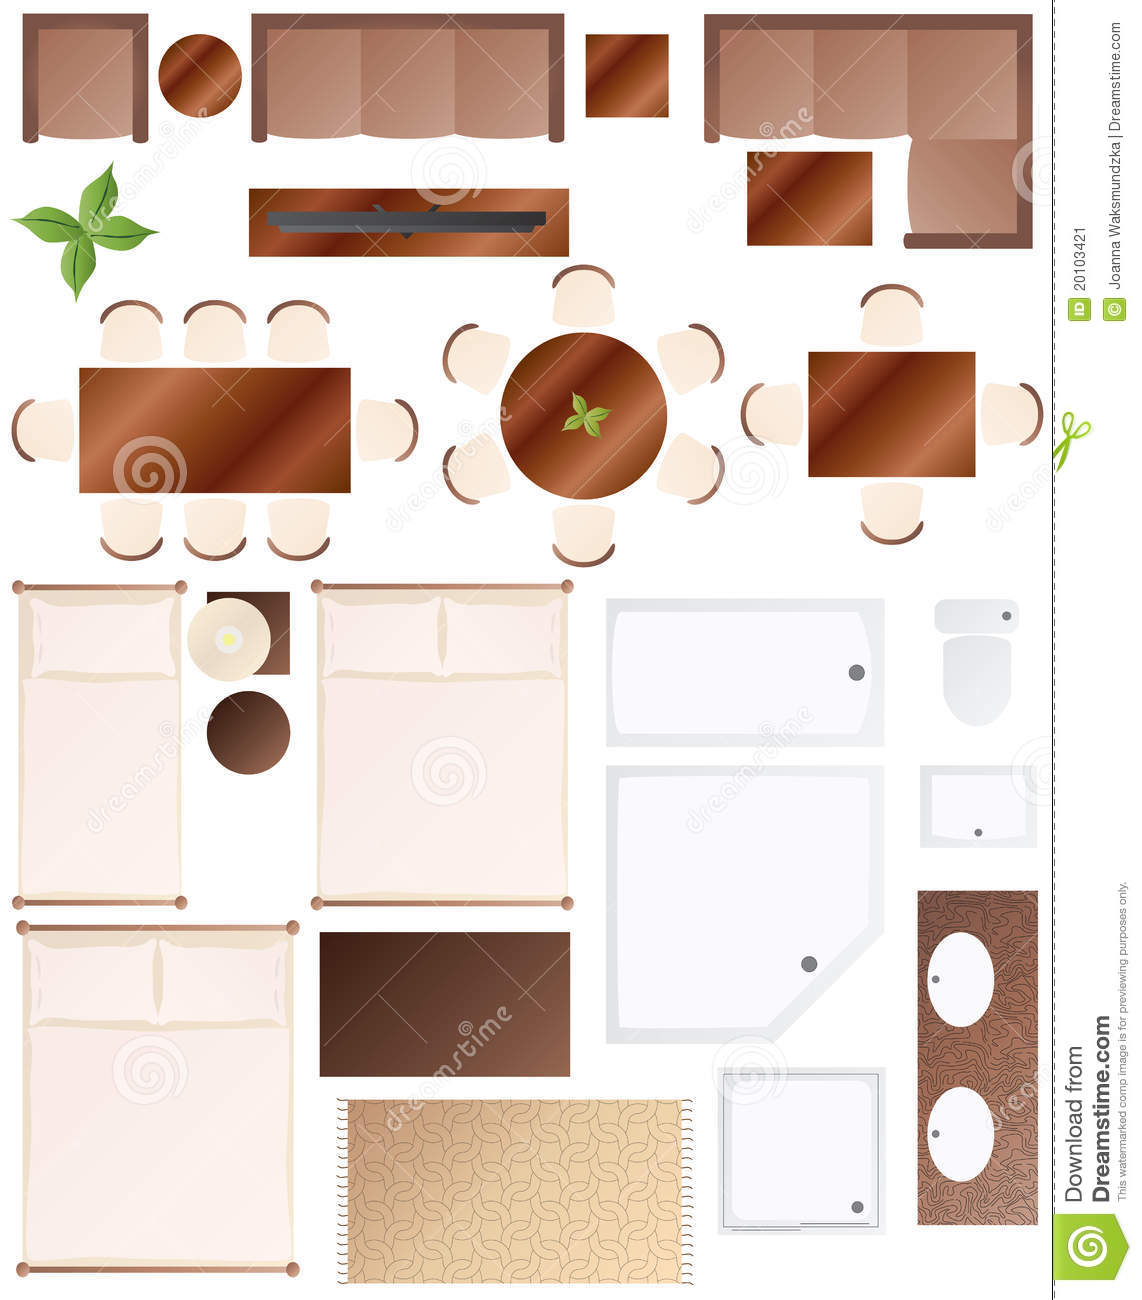 Floor Plan Furniture Collection Stock Vector Image 20103421 : floor plan furniture collection 20103421 from www.dreamstime.com size 1142 x 1300 jpeg 118kB